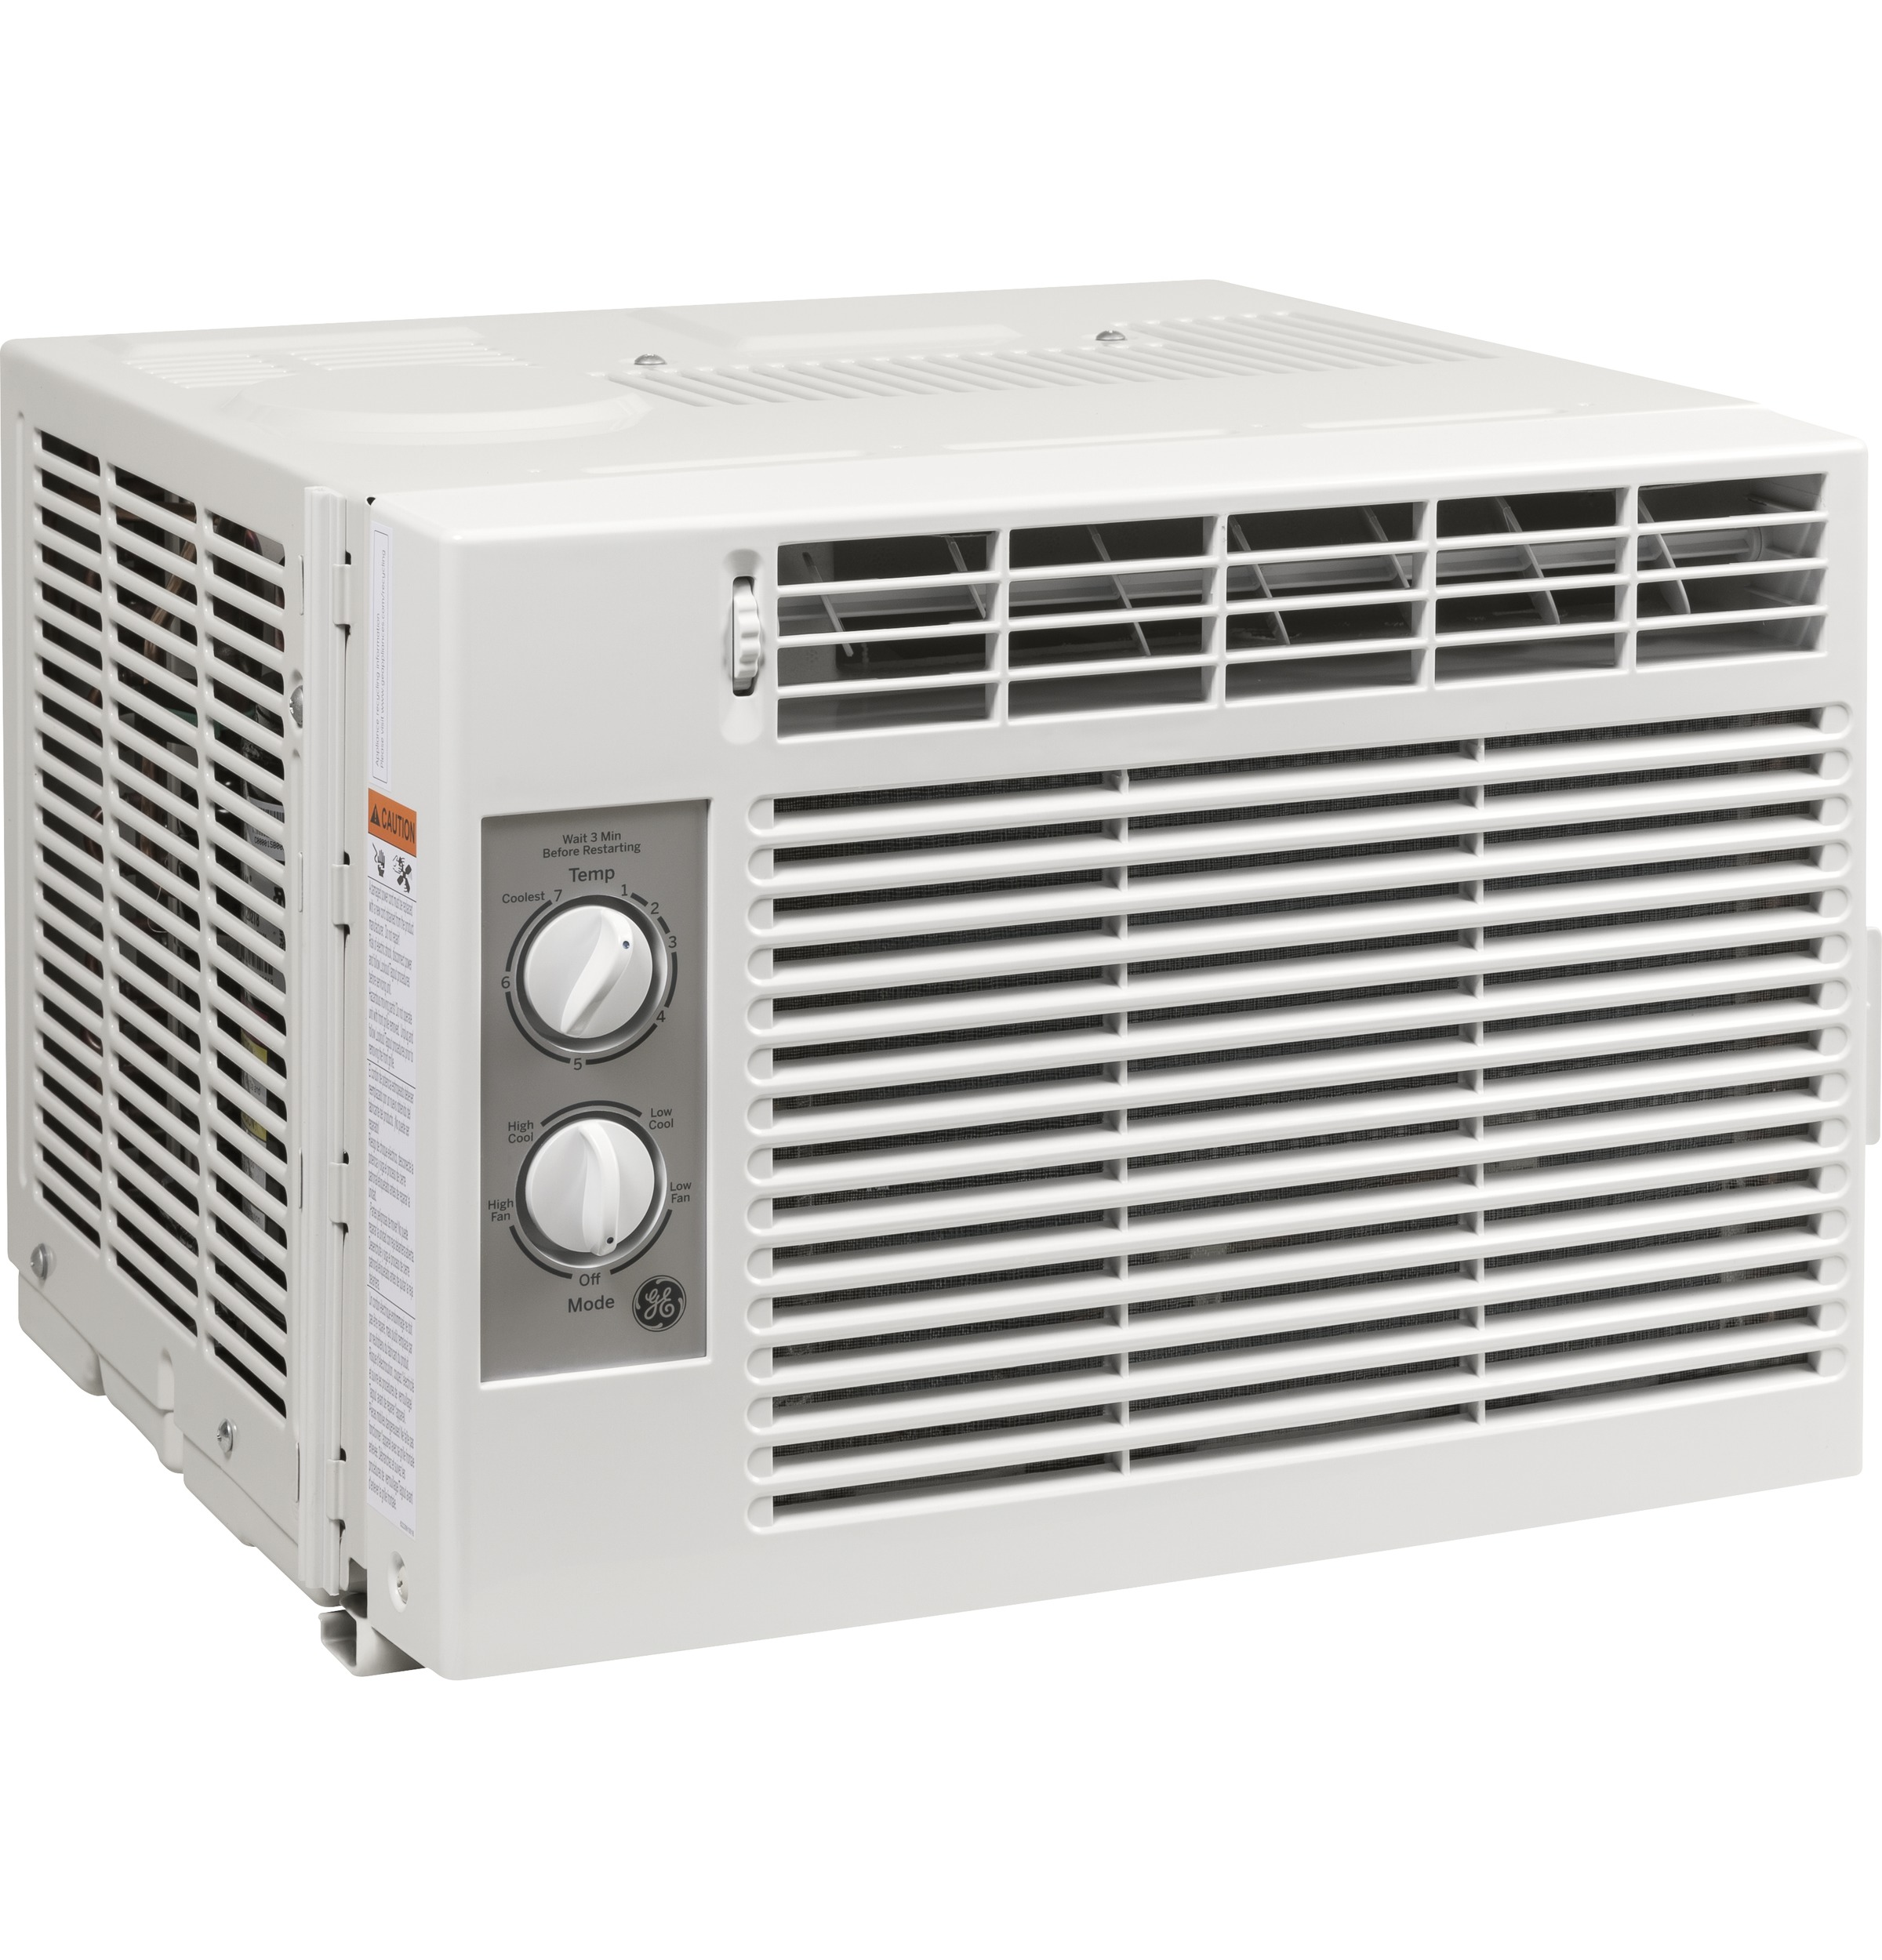 GE 5000 BTU Mechanical Air Conditioner, 115V, Gray, AET05LX